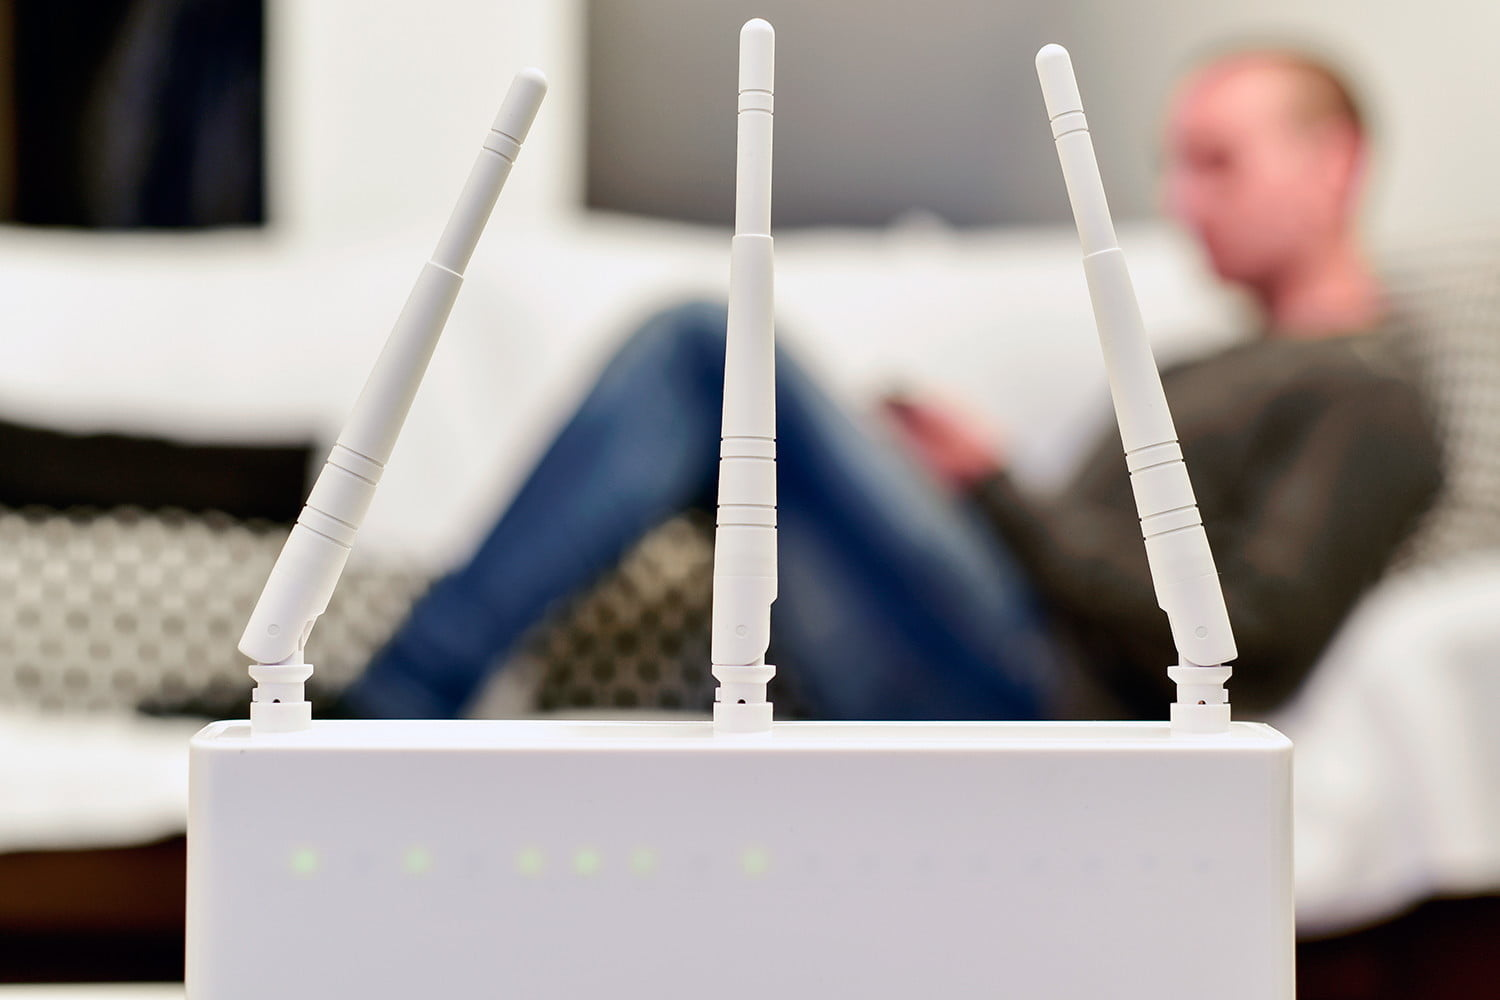 How to Extend Wi-Fi Range with Another Router: DIY Access